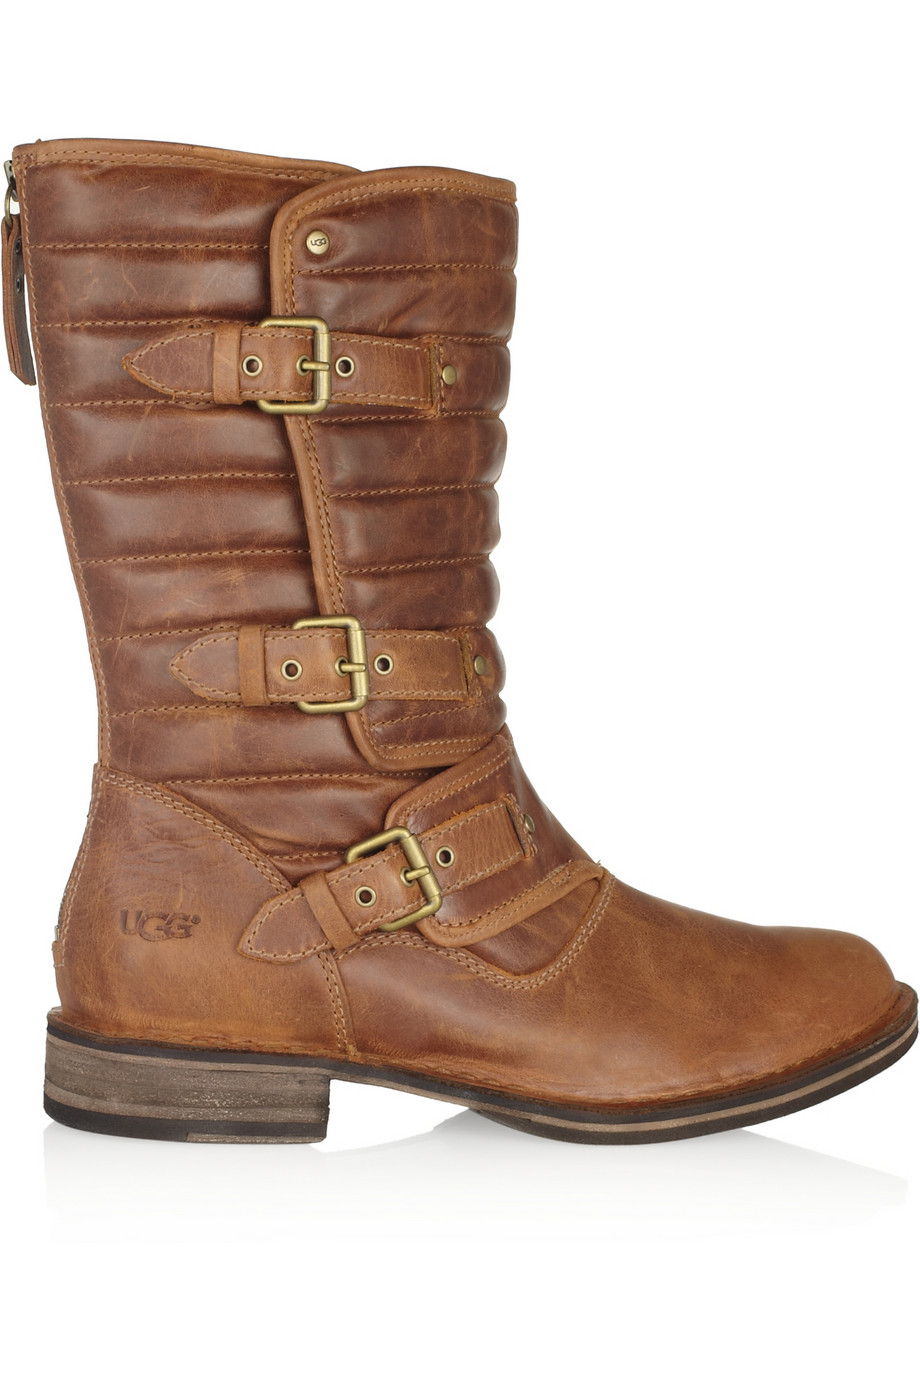 f828f349409 Brown Leather Ugg Boots Office - cheap watches mgc-gas.com